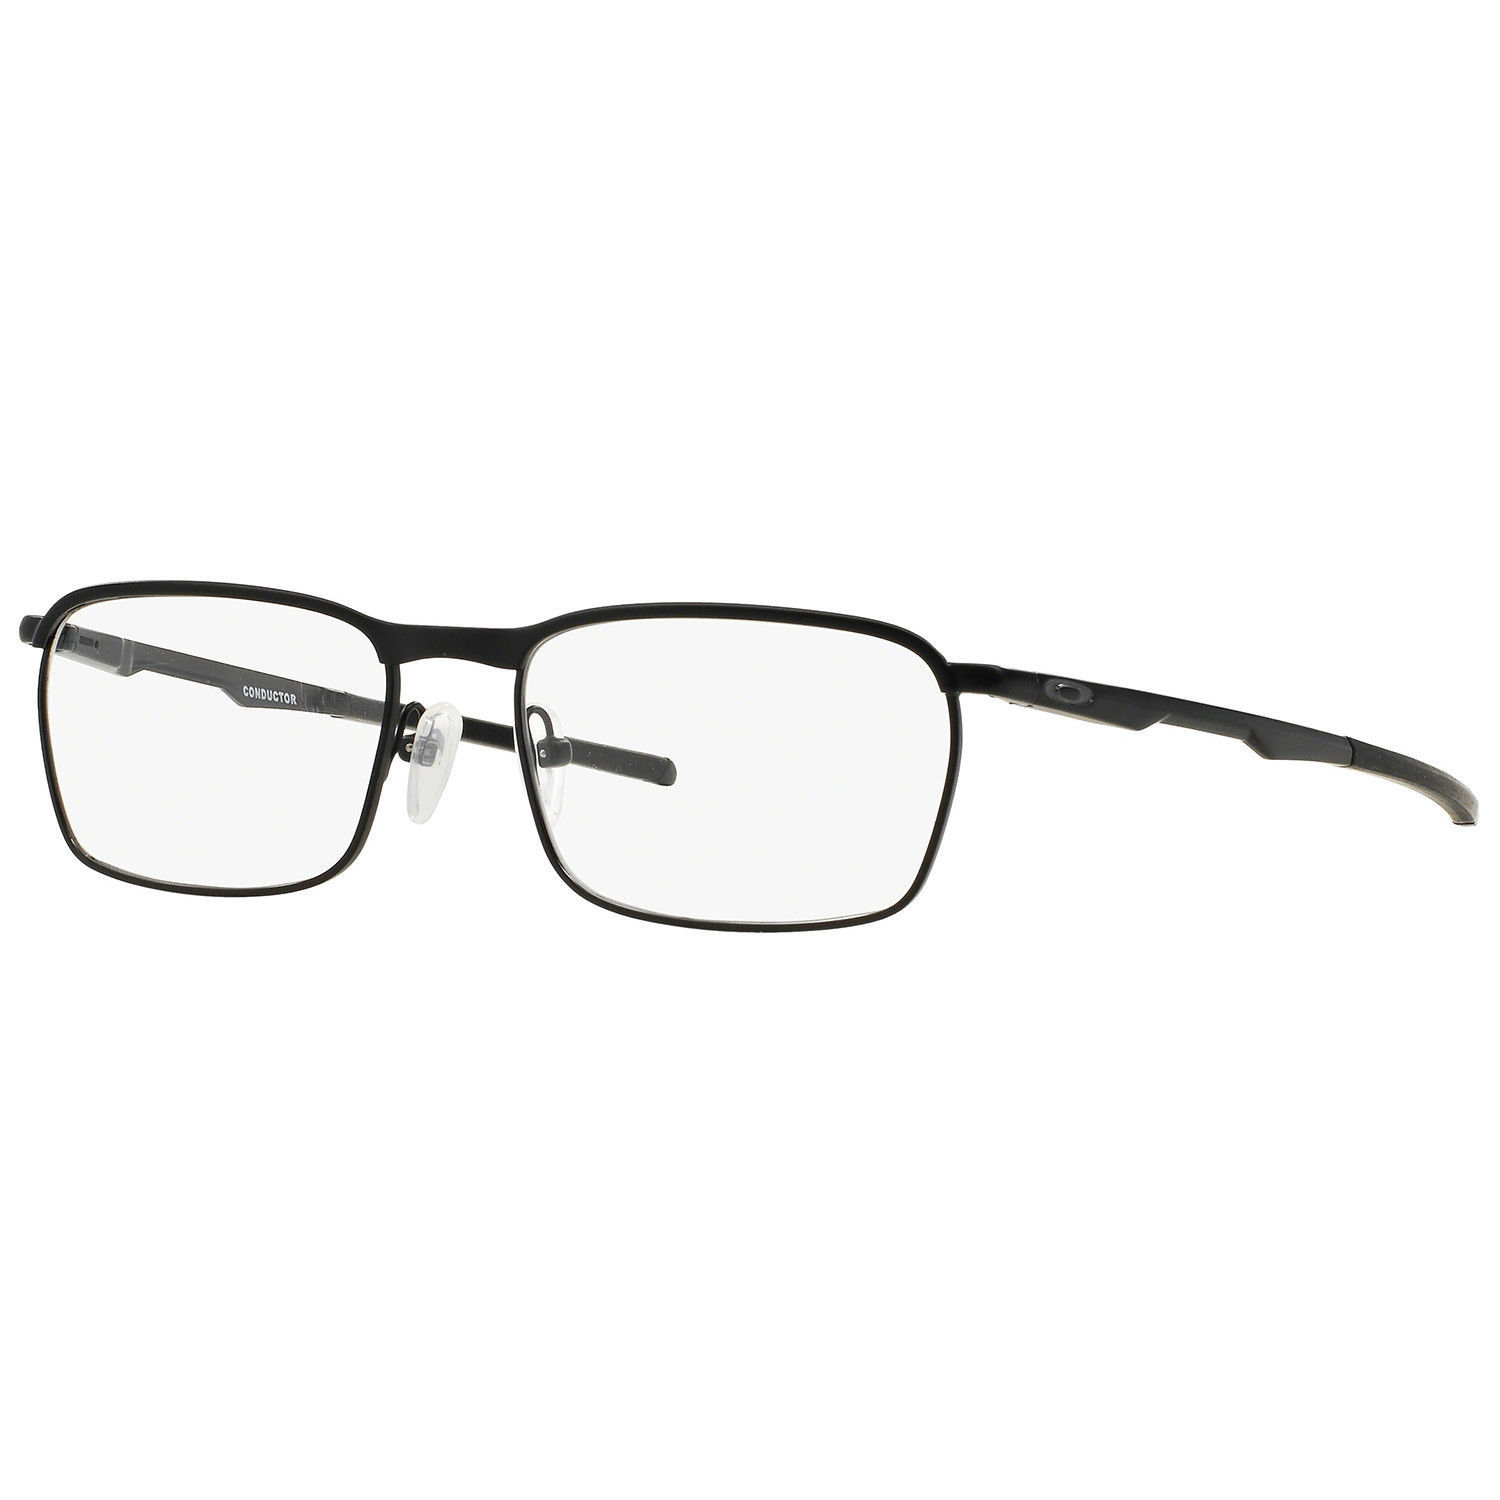 13876beedd Oakley OX 3186 0154 Conductor 54-17-137 Satin Black Eyeglasses -  98.95